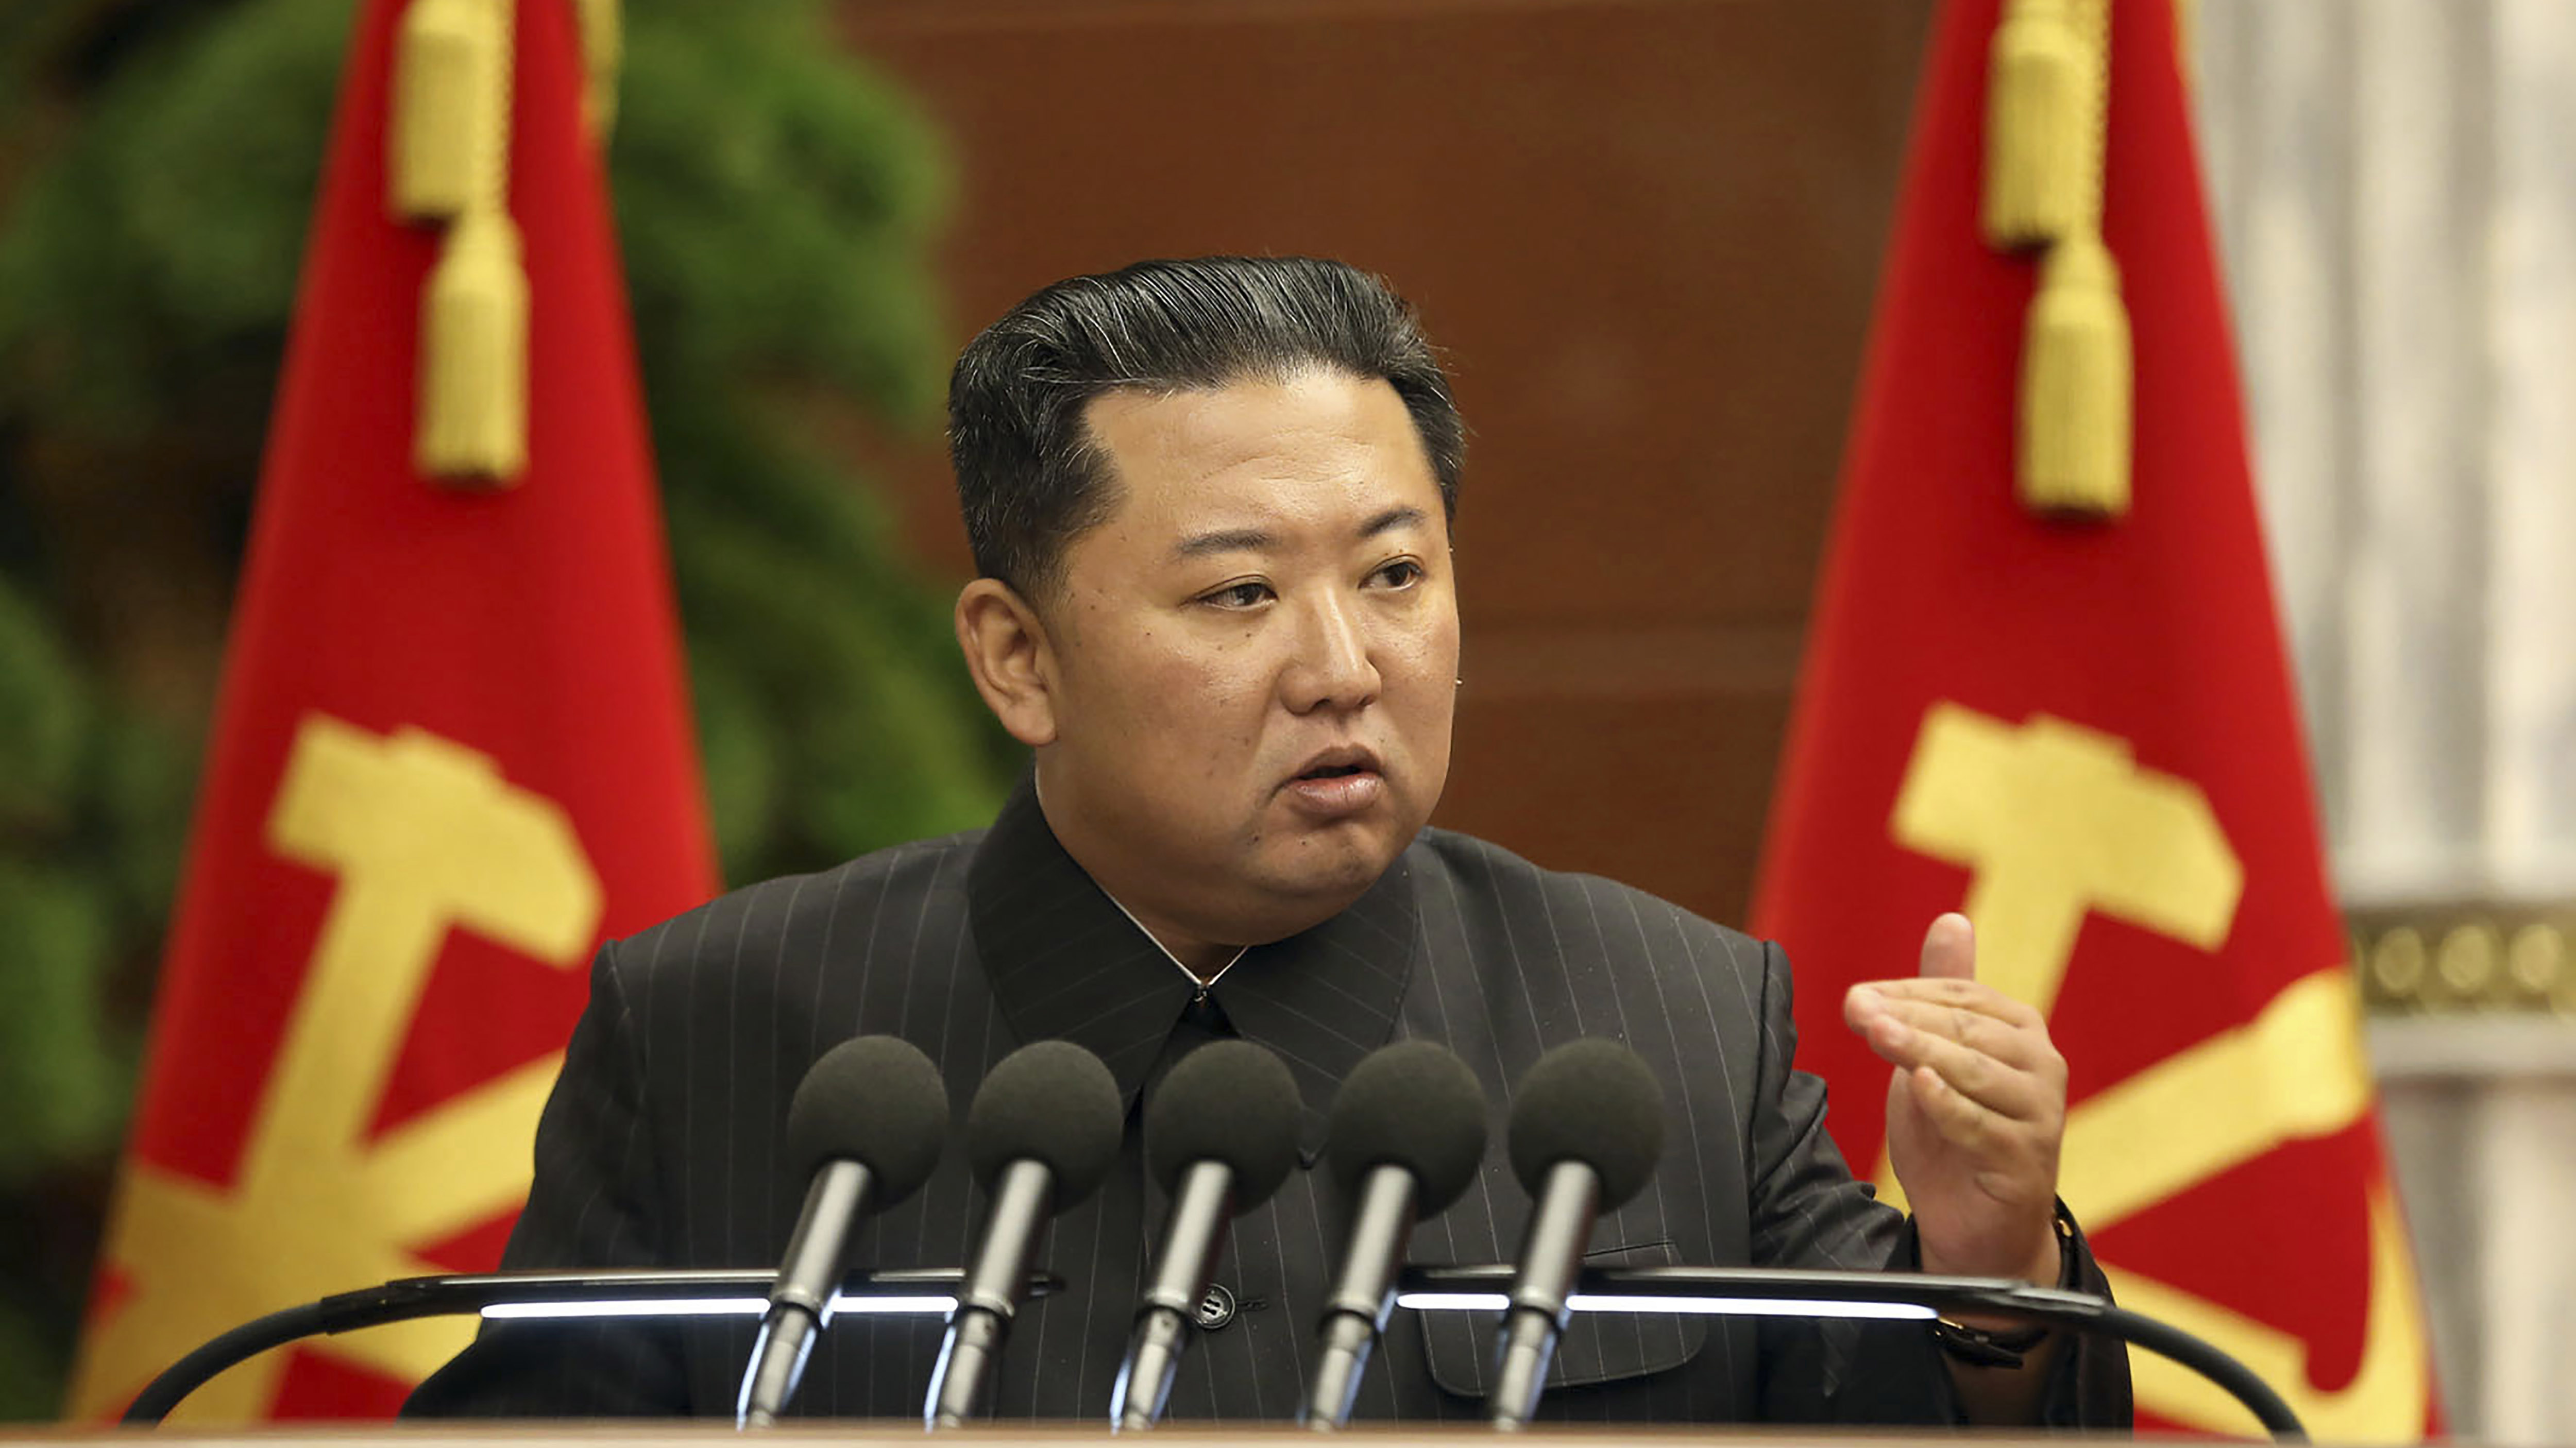 The US anticipated that some missiles would be tested in a show of strength by North Korea and its leader, Kim Jong Un.